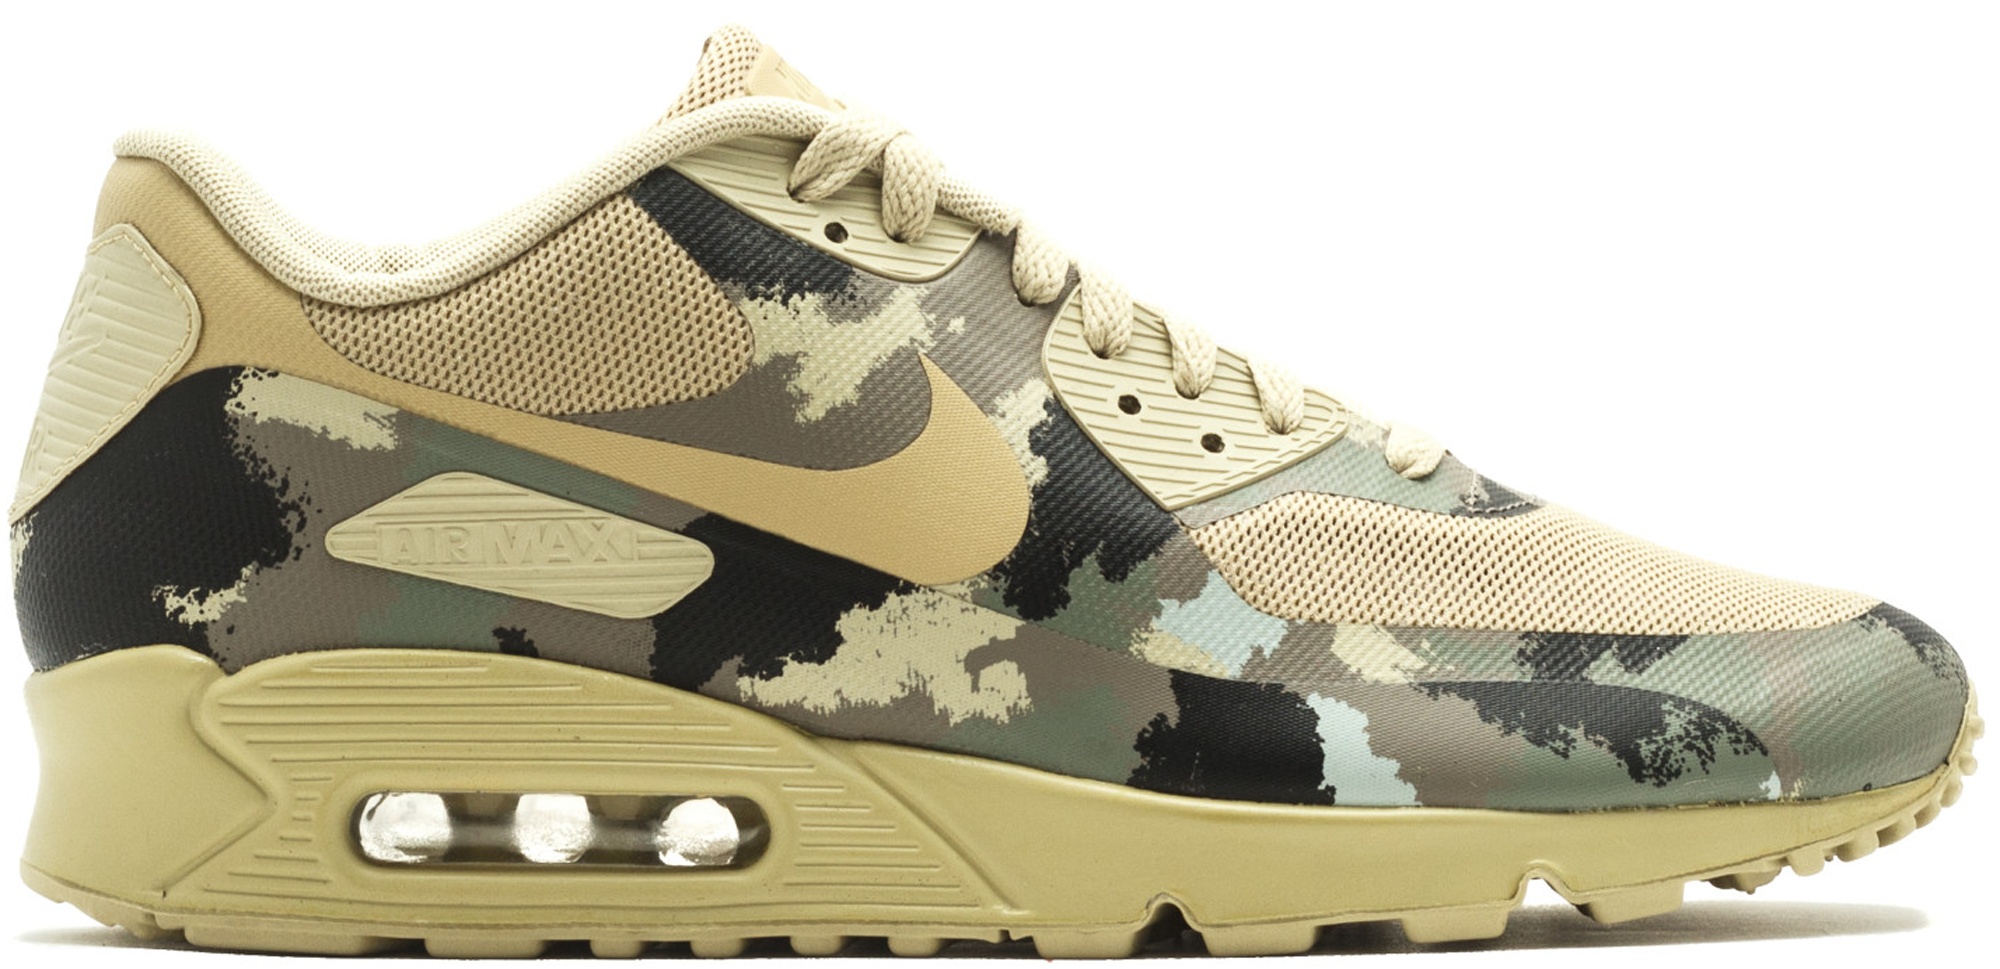 promo code for nike air max 90 hyperfuse 5ab38 b1e0f